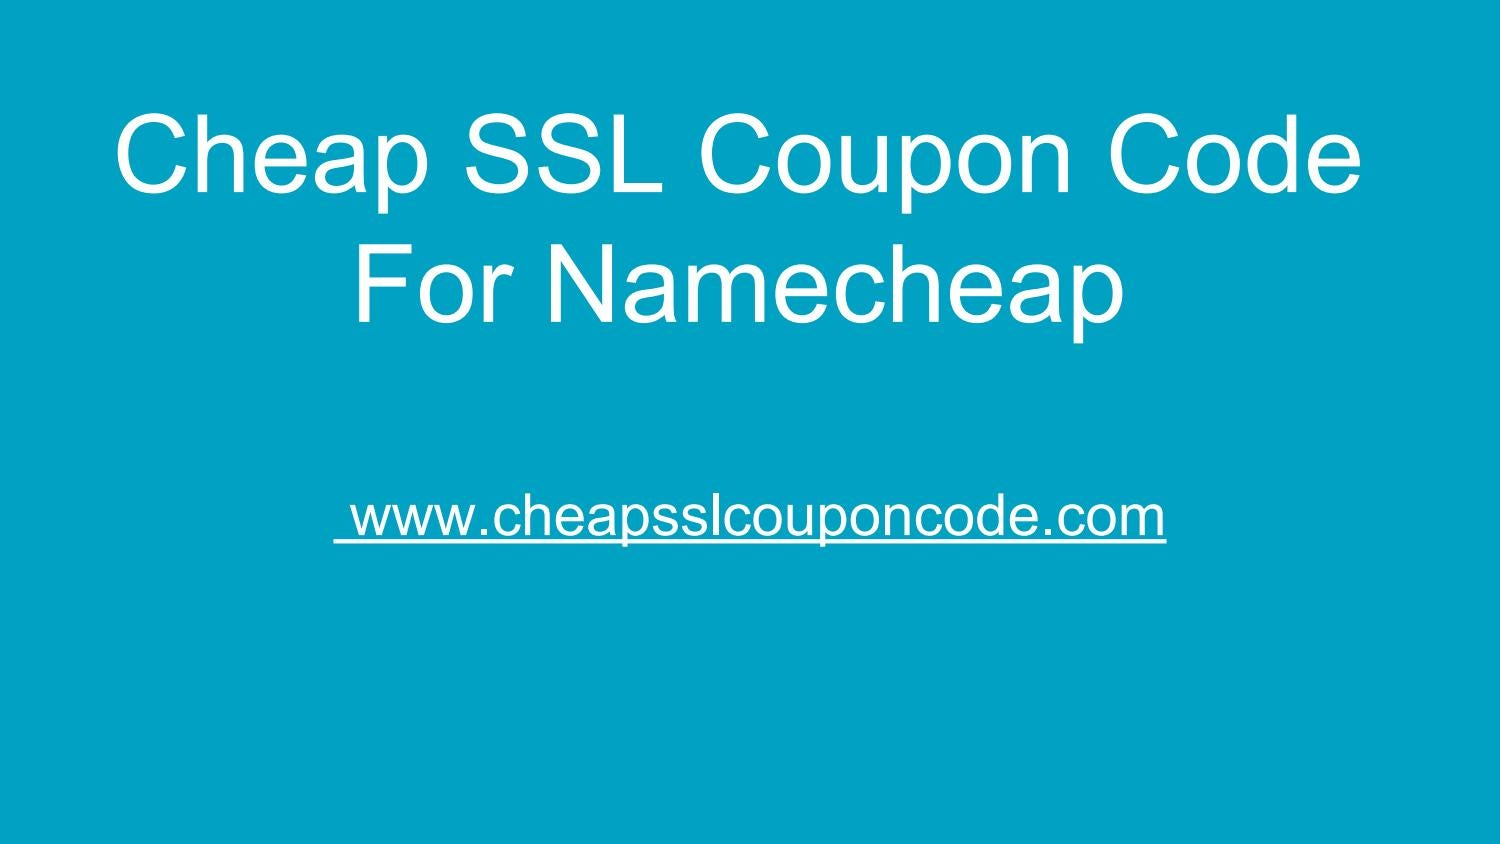 Cheap Ssl Coupon Code For Namecheap By Cheap Ssl Coupon Code Issuu